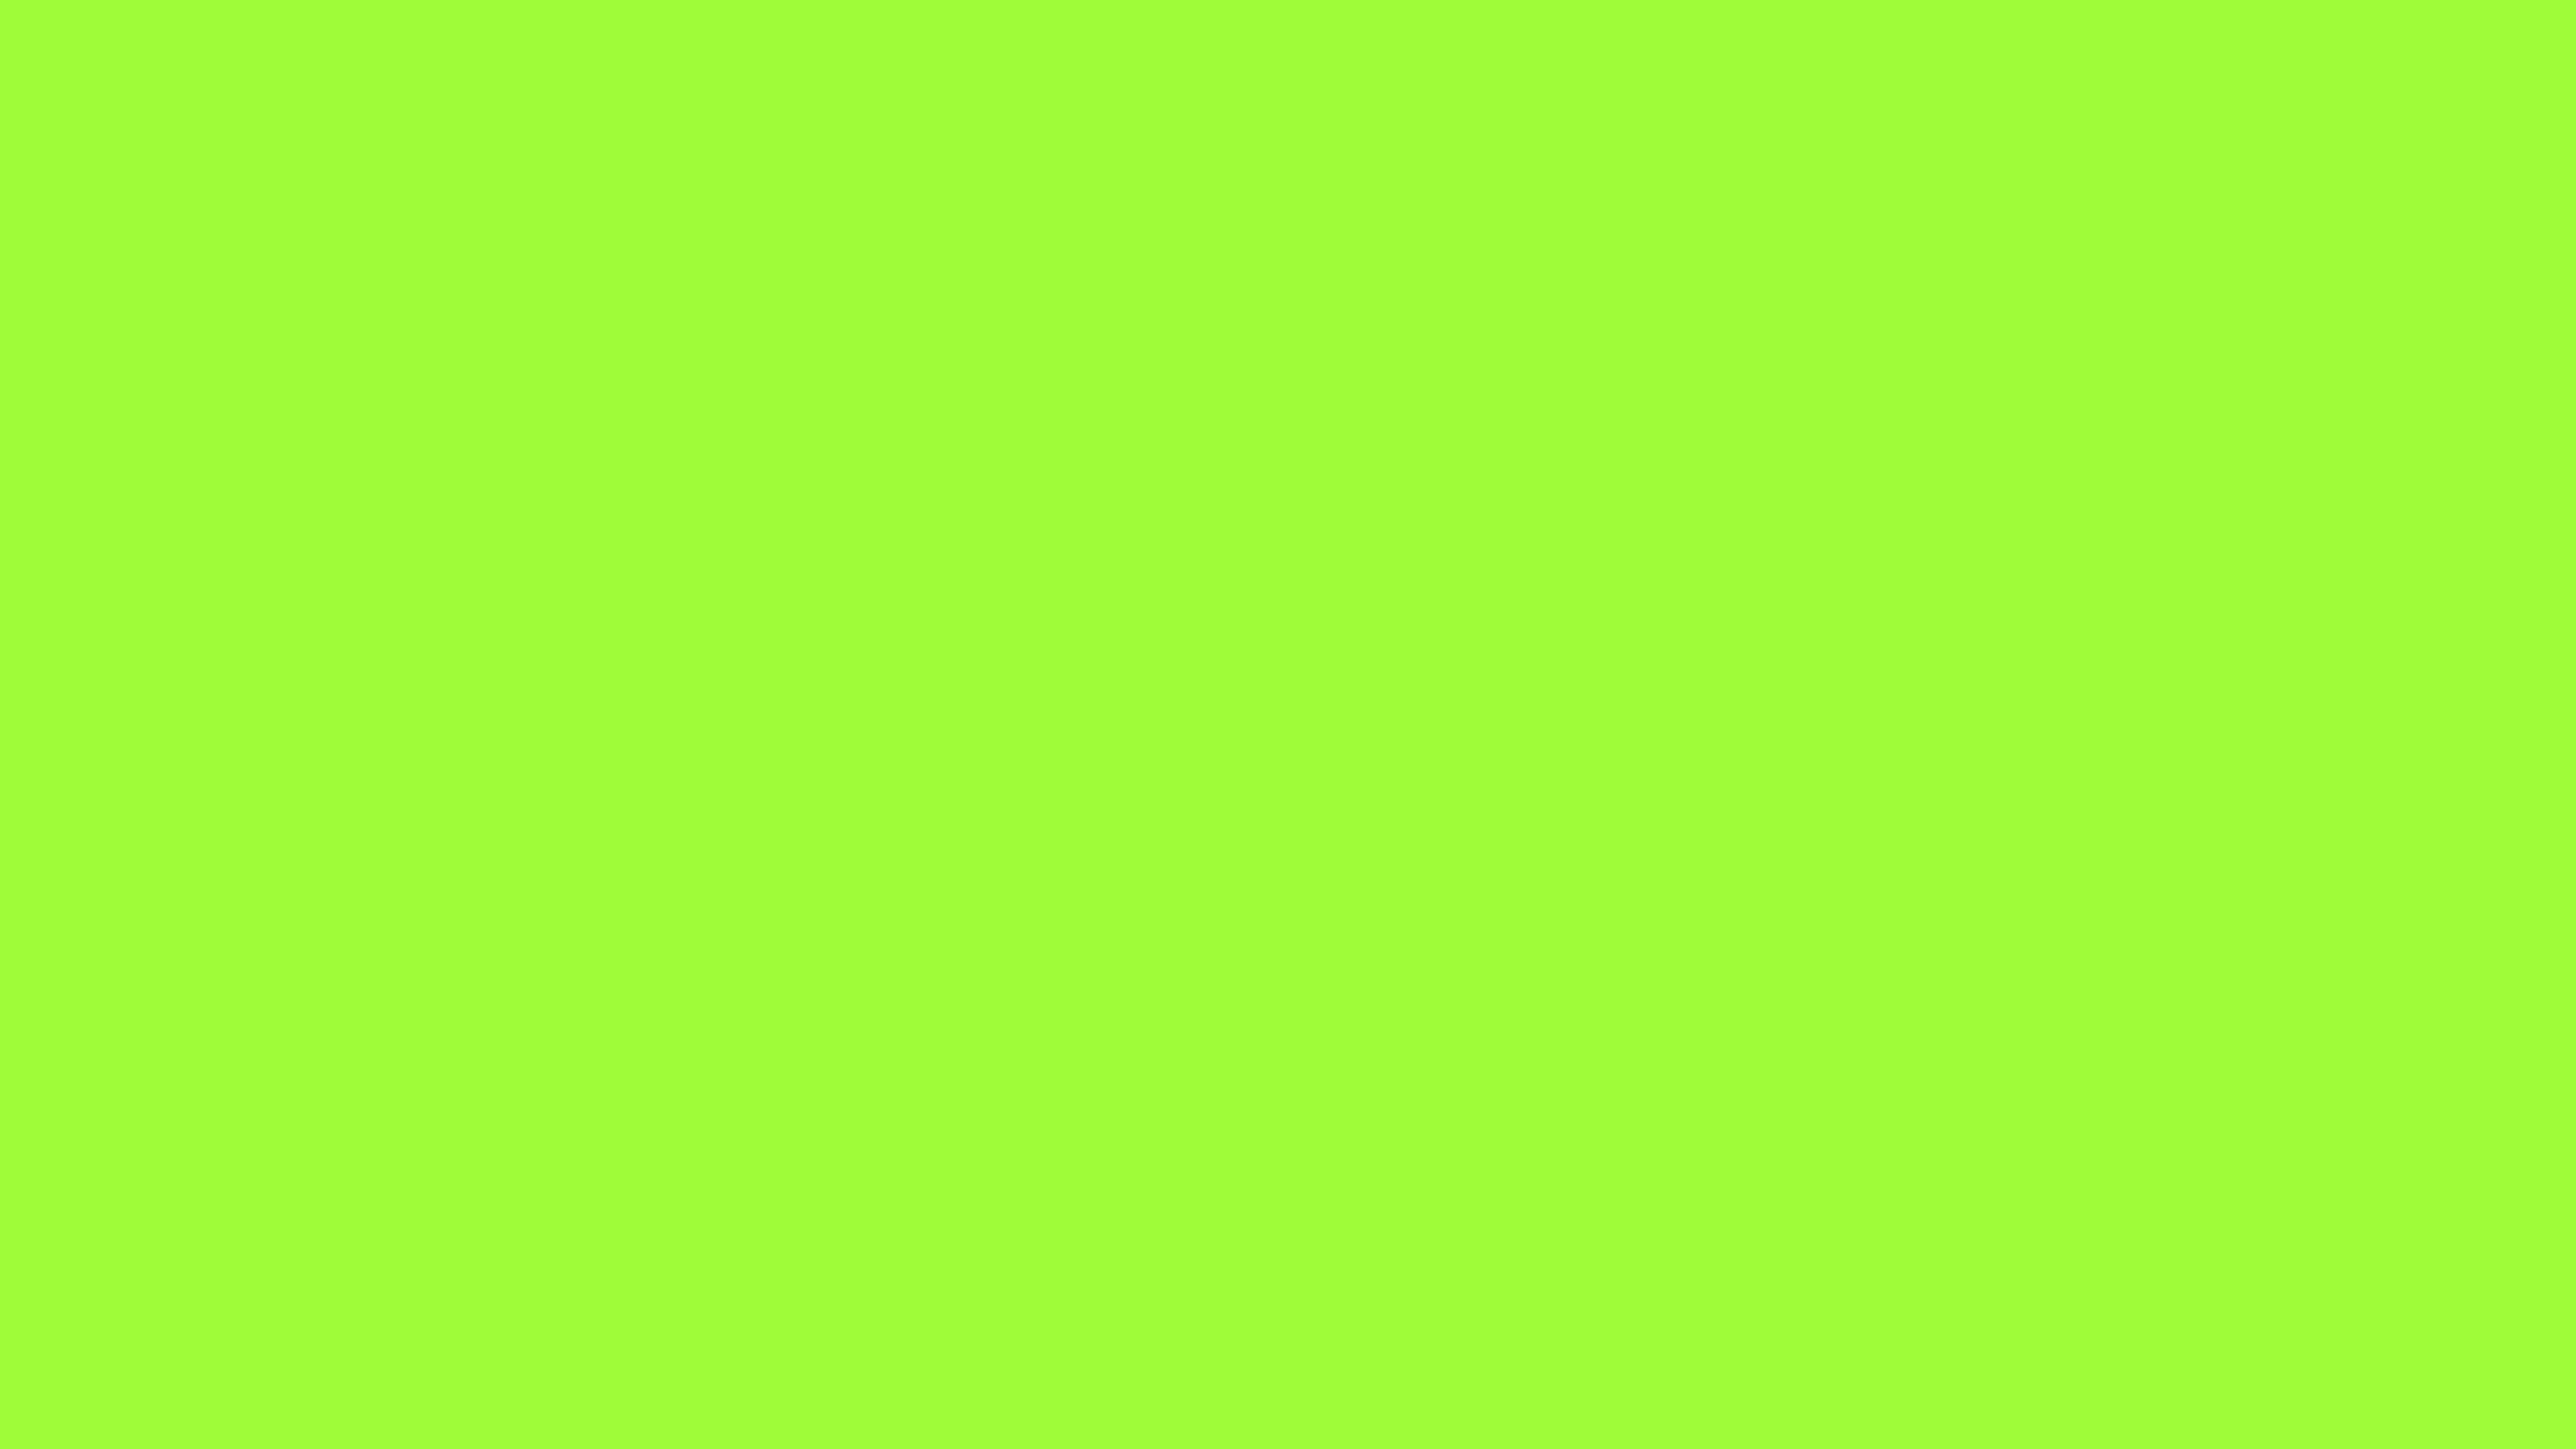 4096x2304 French Lime Solid Color Background